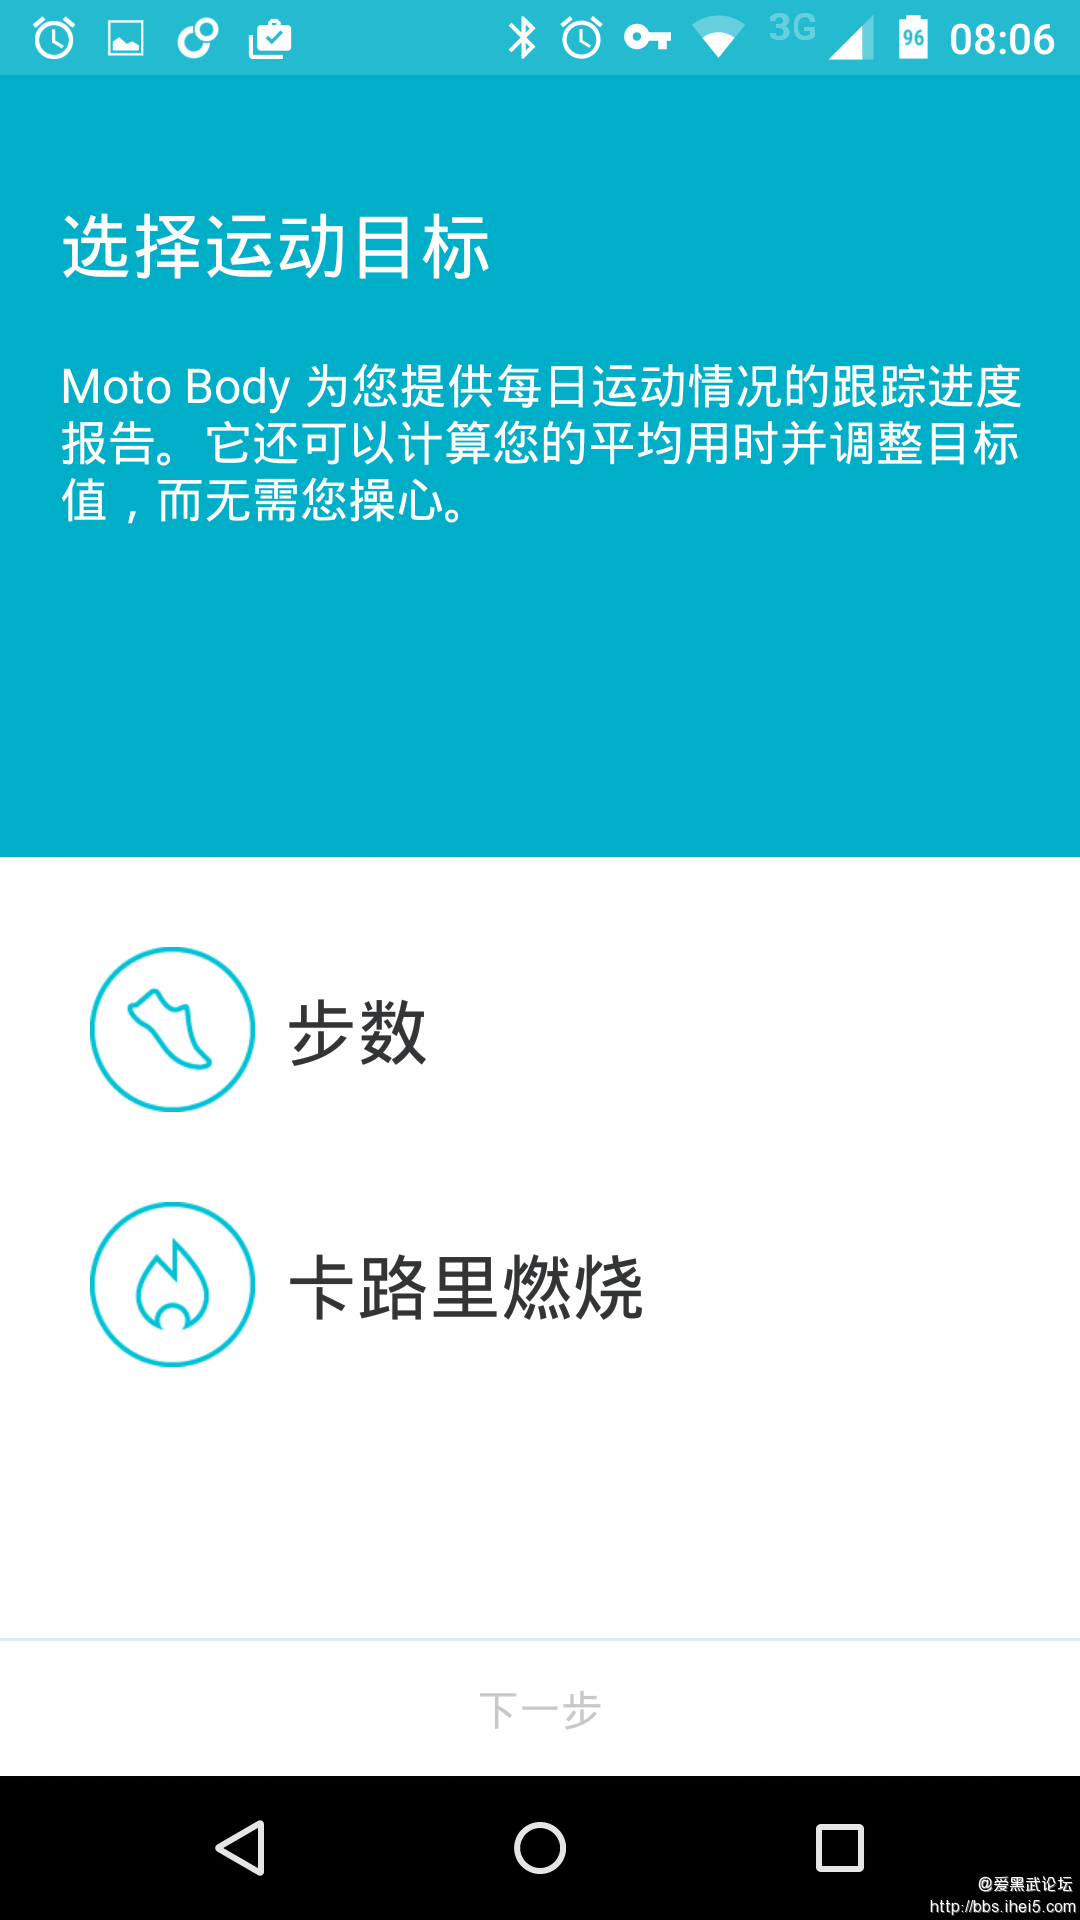 Screenshot_2015-09-15-08-06-40.png